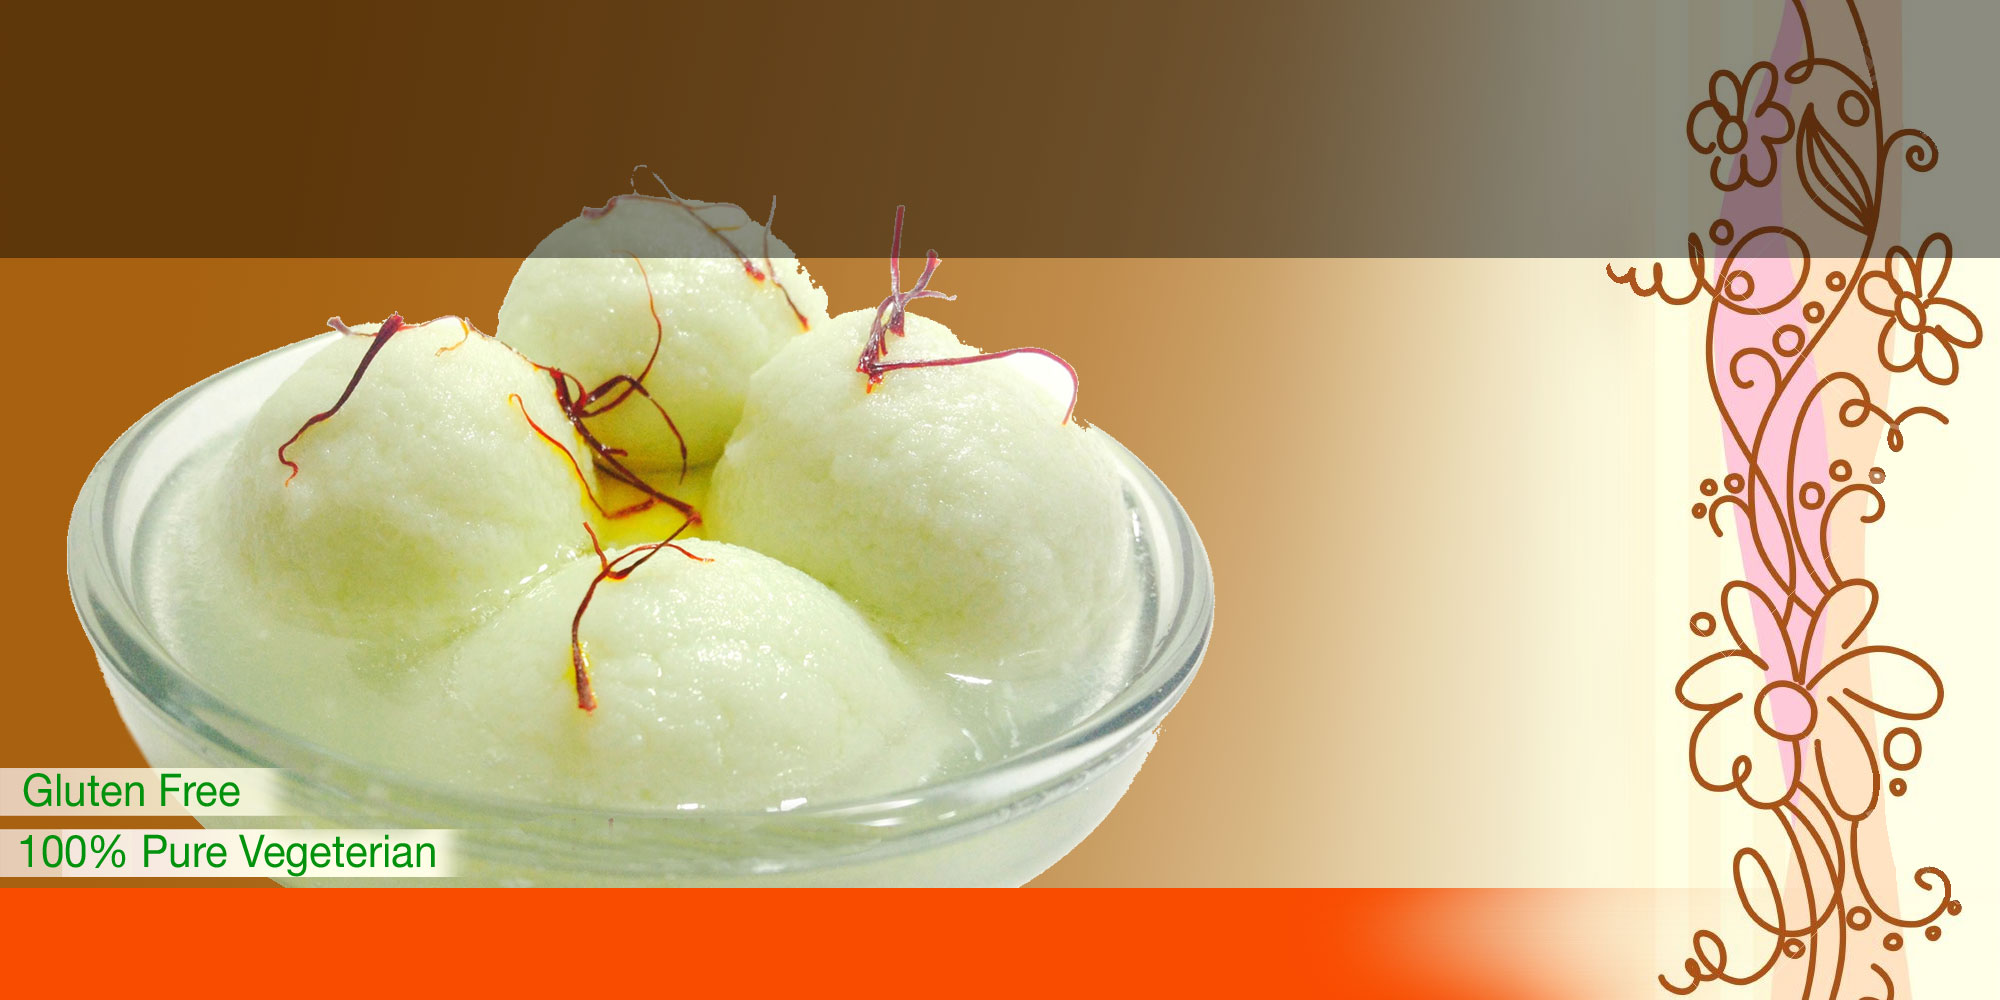 Bengali Sweets & Restaurant - best indian restaurant, indian sweets shop in Etobicoke, North york, Scarborough, Markham, Mississauga, Toronto, Brampton, Vaughan, Oakville, Caledon, Gta, York, Ontario.